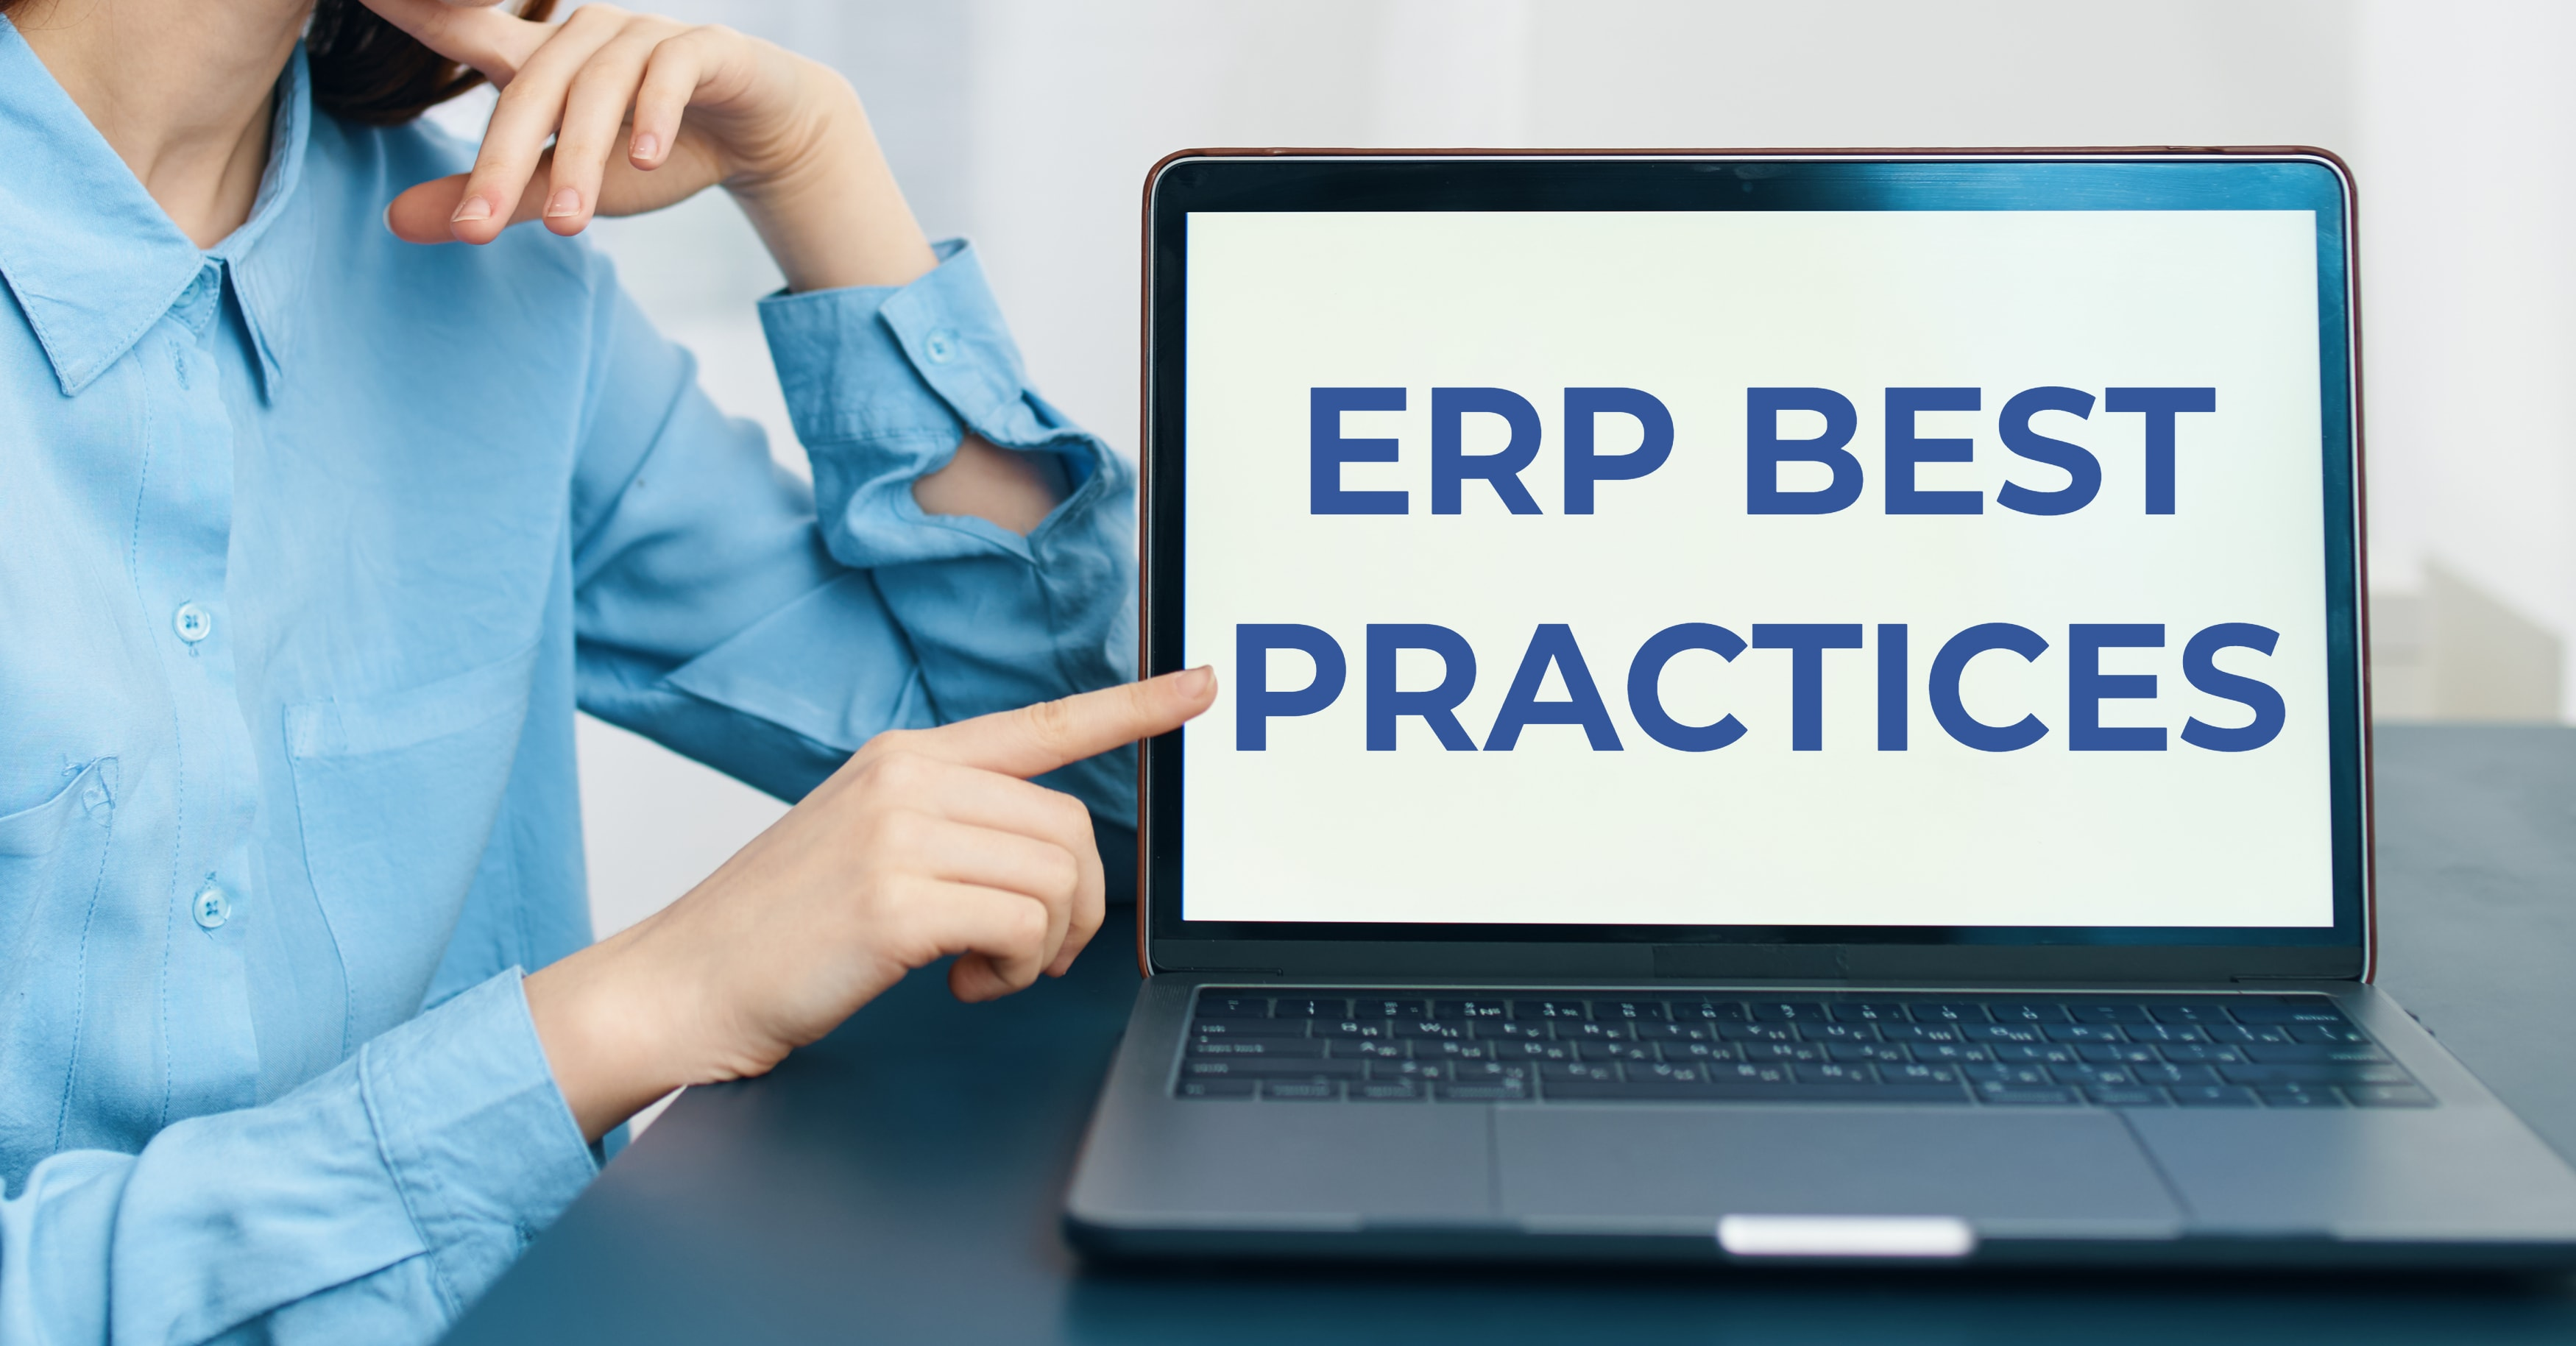 Epicor Insights 2019, Part 5: ERP Best Practices